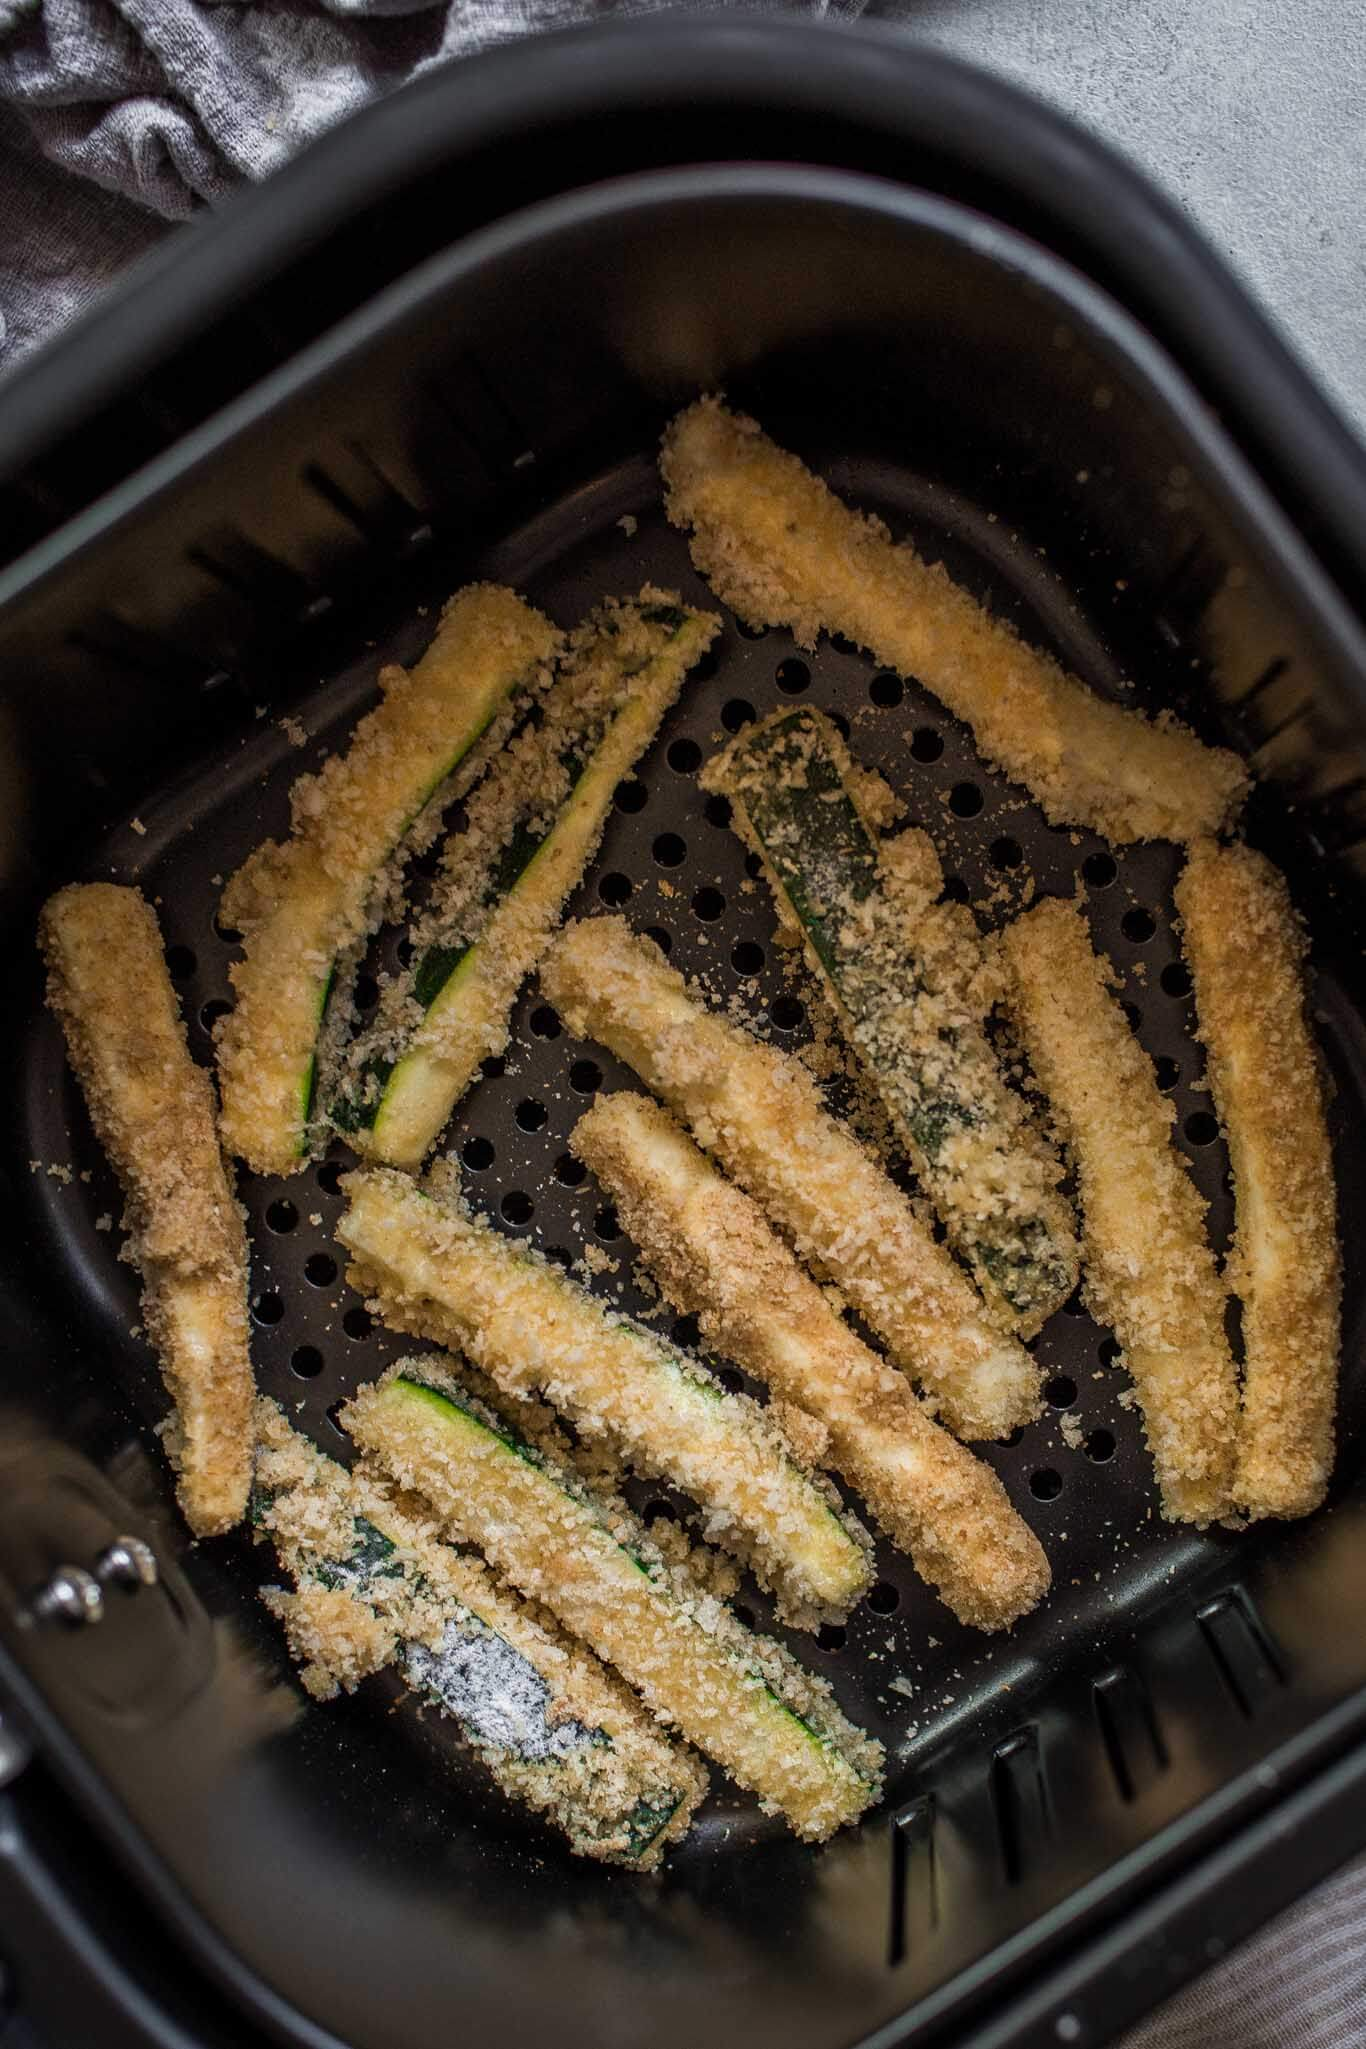 Zucchini fries in air fryer basket.